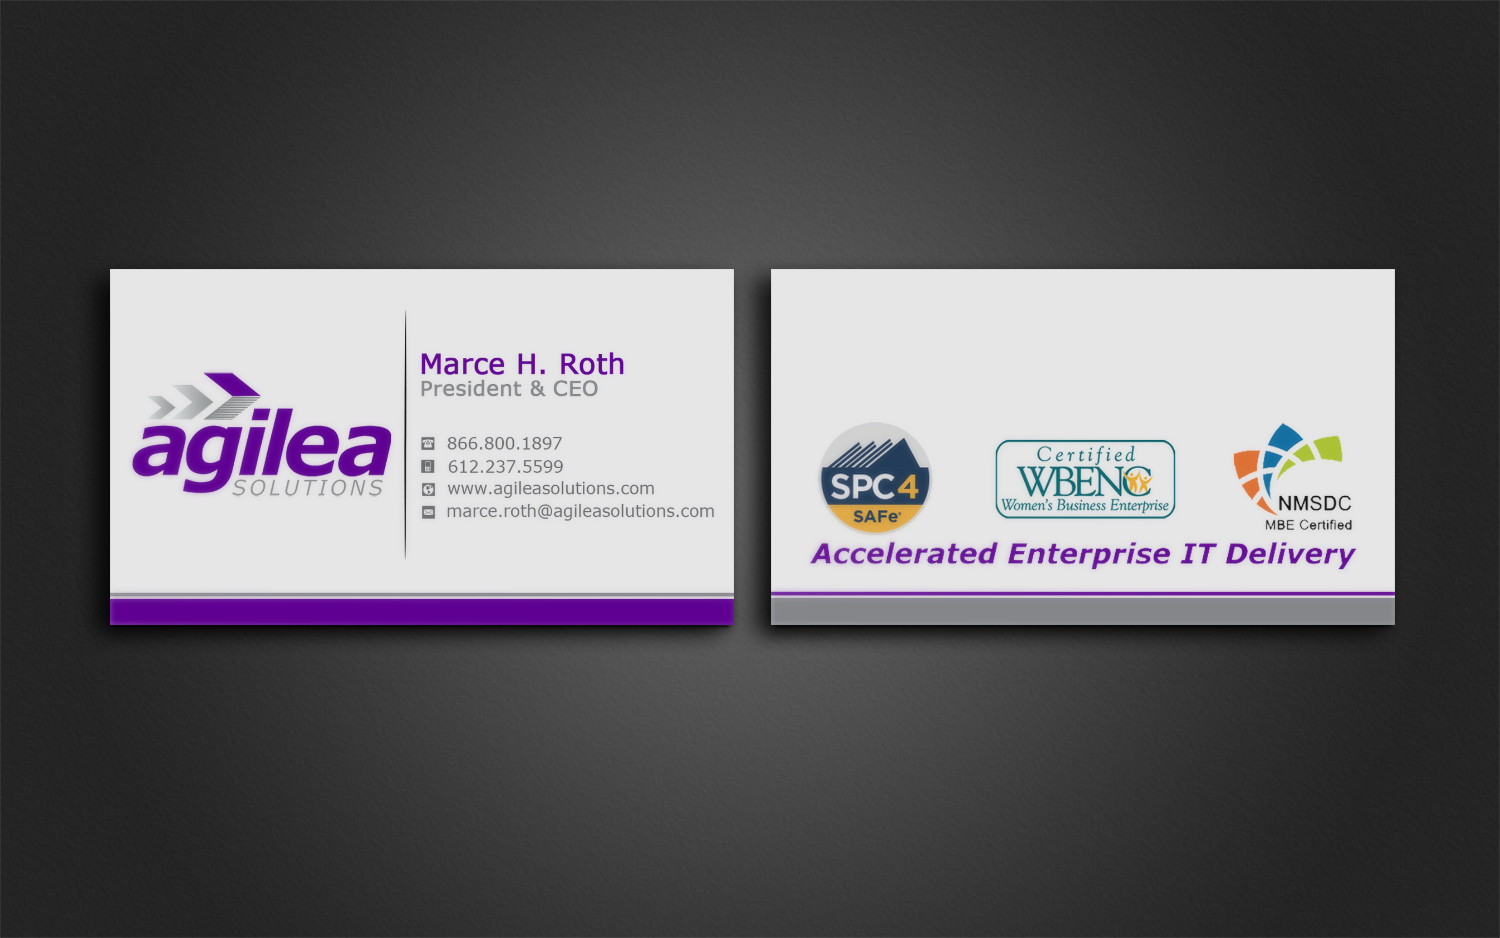 Business business card design for a company by creation lanka business card design by creation lanka for this project design 10187239 colourmoves Choice Image